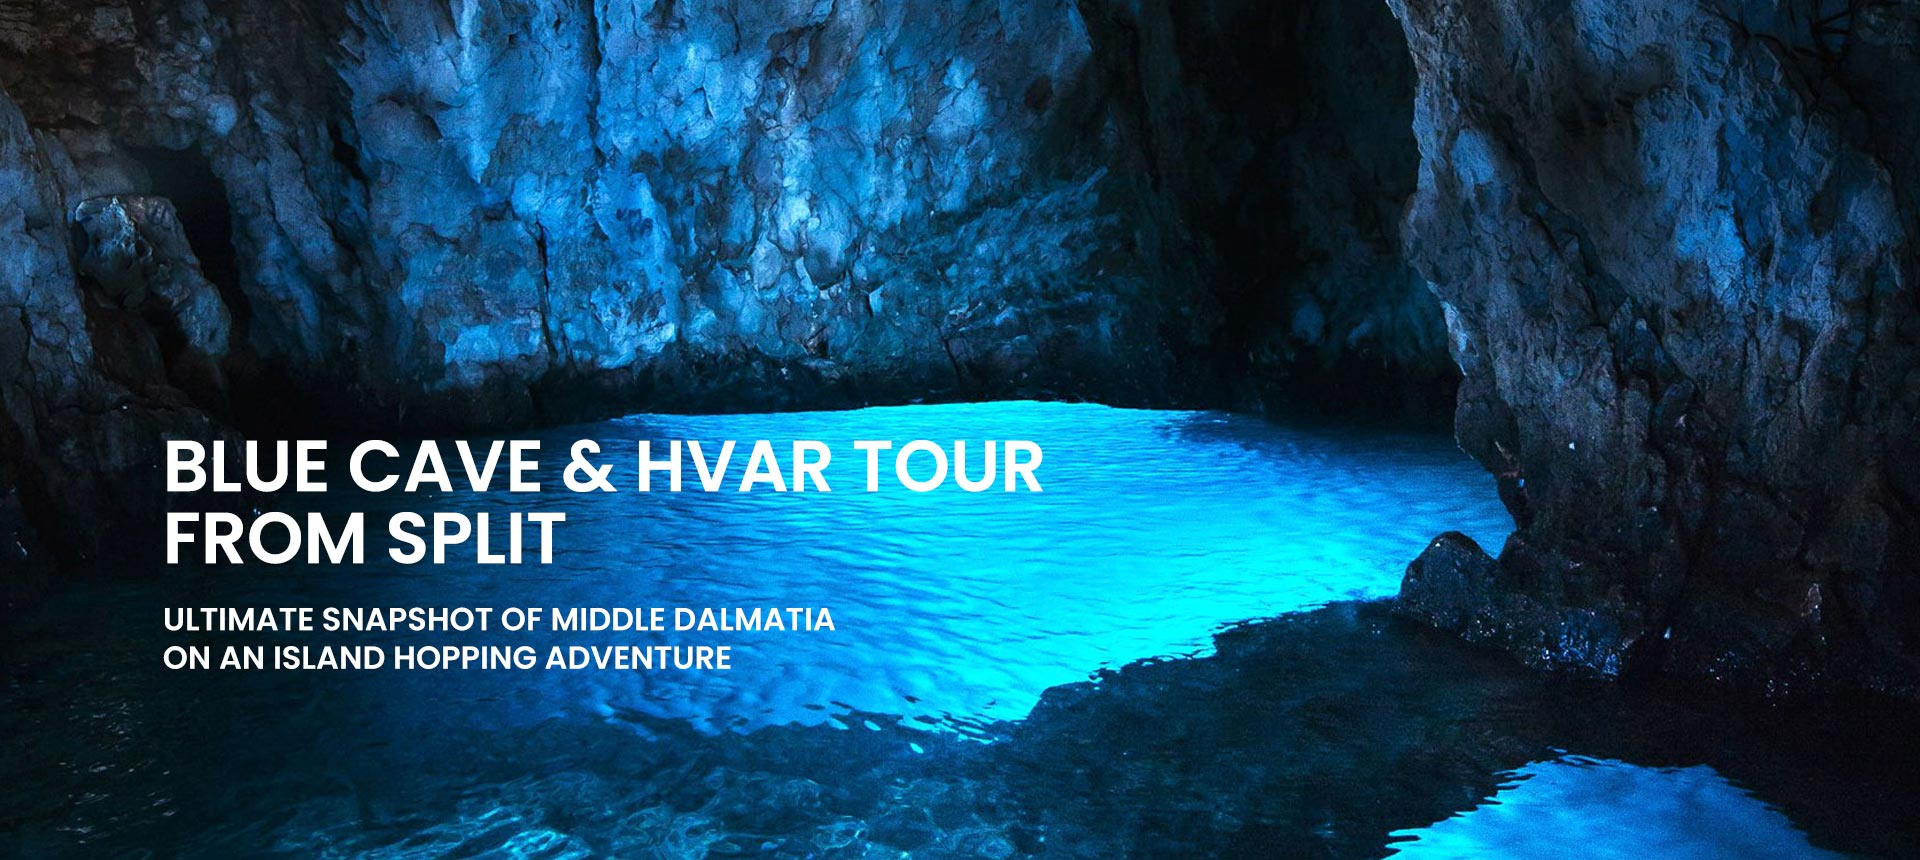 Blue Cave and Hvar tour from Split by Sugaman Tours